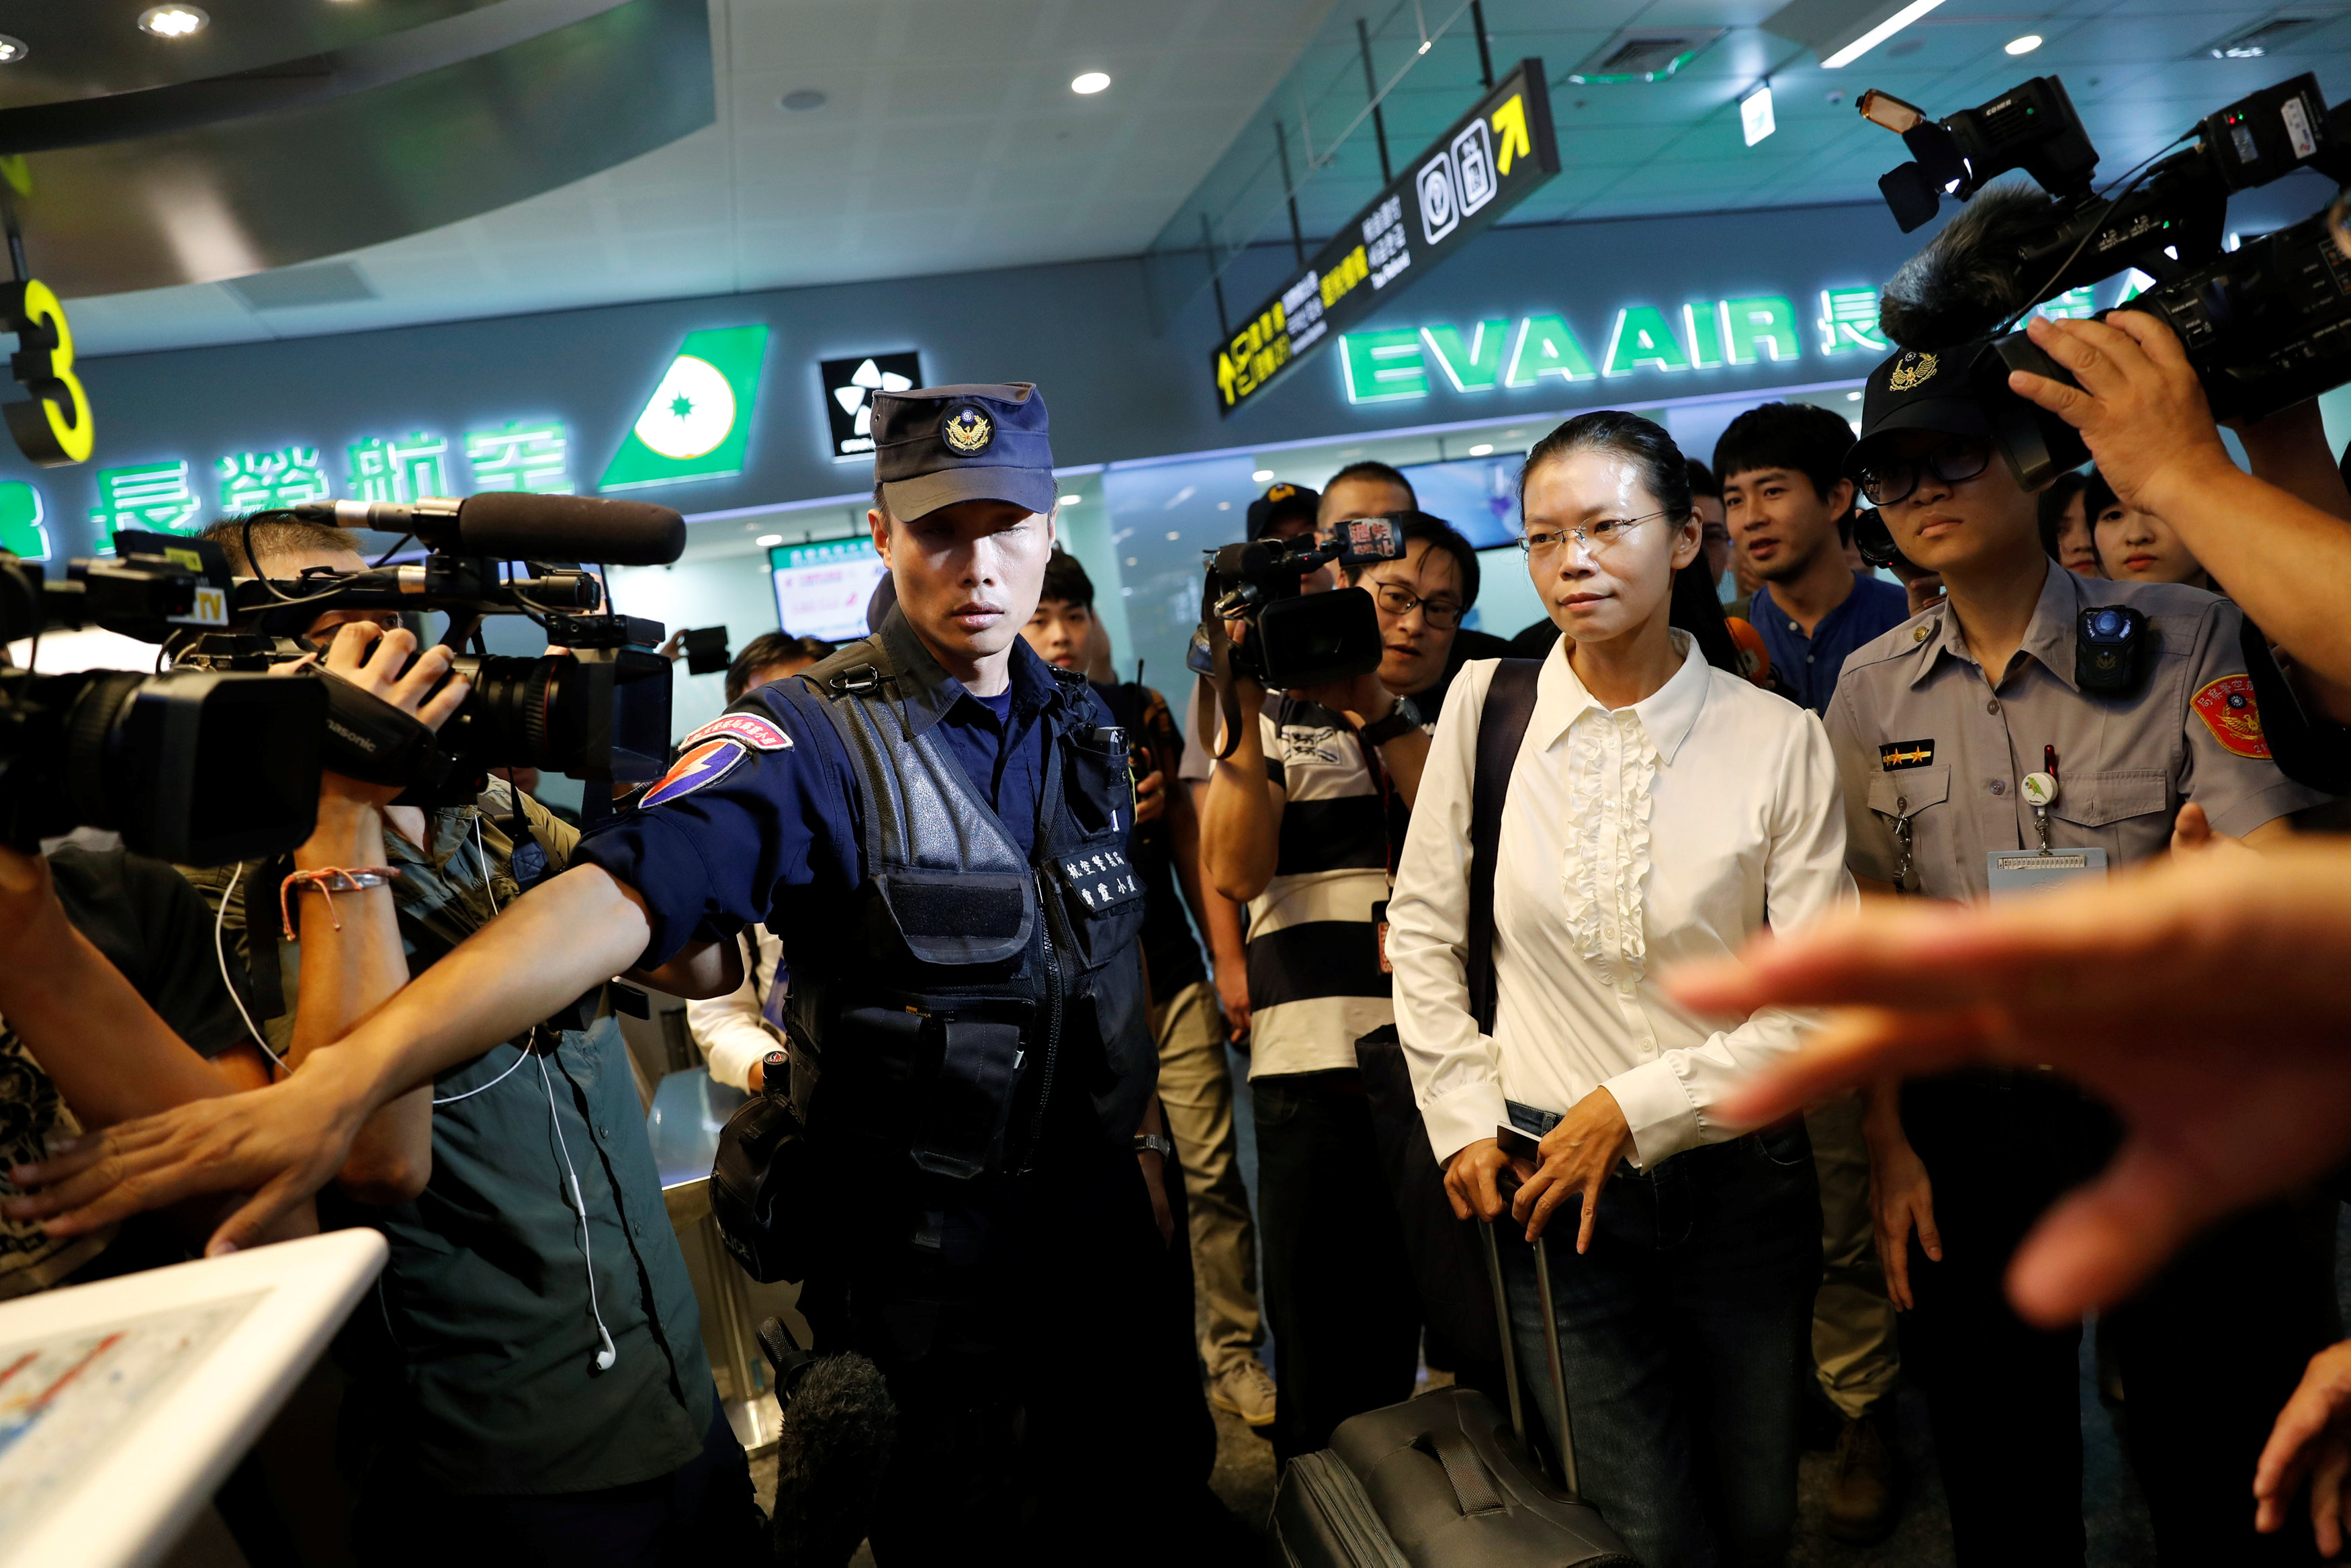 Lee Ching-yu, wife of Taiwan human rights advocate Lee Ming-che, also known as Li Ming-Che, who has been detained in China, departs for her husband's trial from the airport in Taipei, Taiwan on Sept. 10, 2017. (REUTERS/Tyrone Siu)